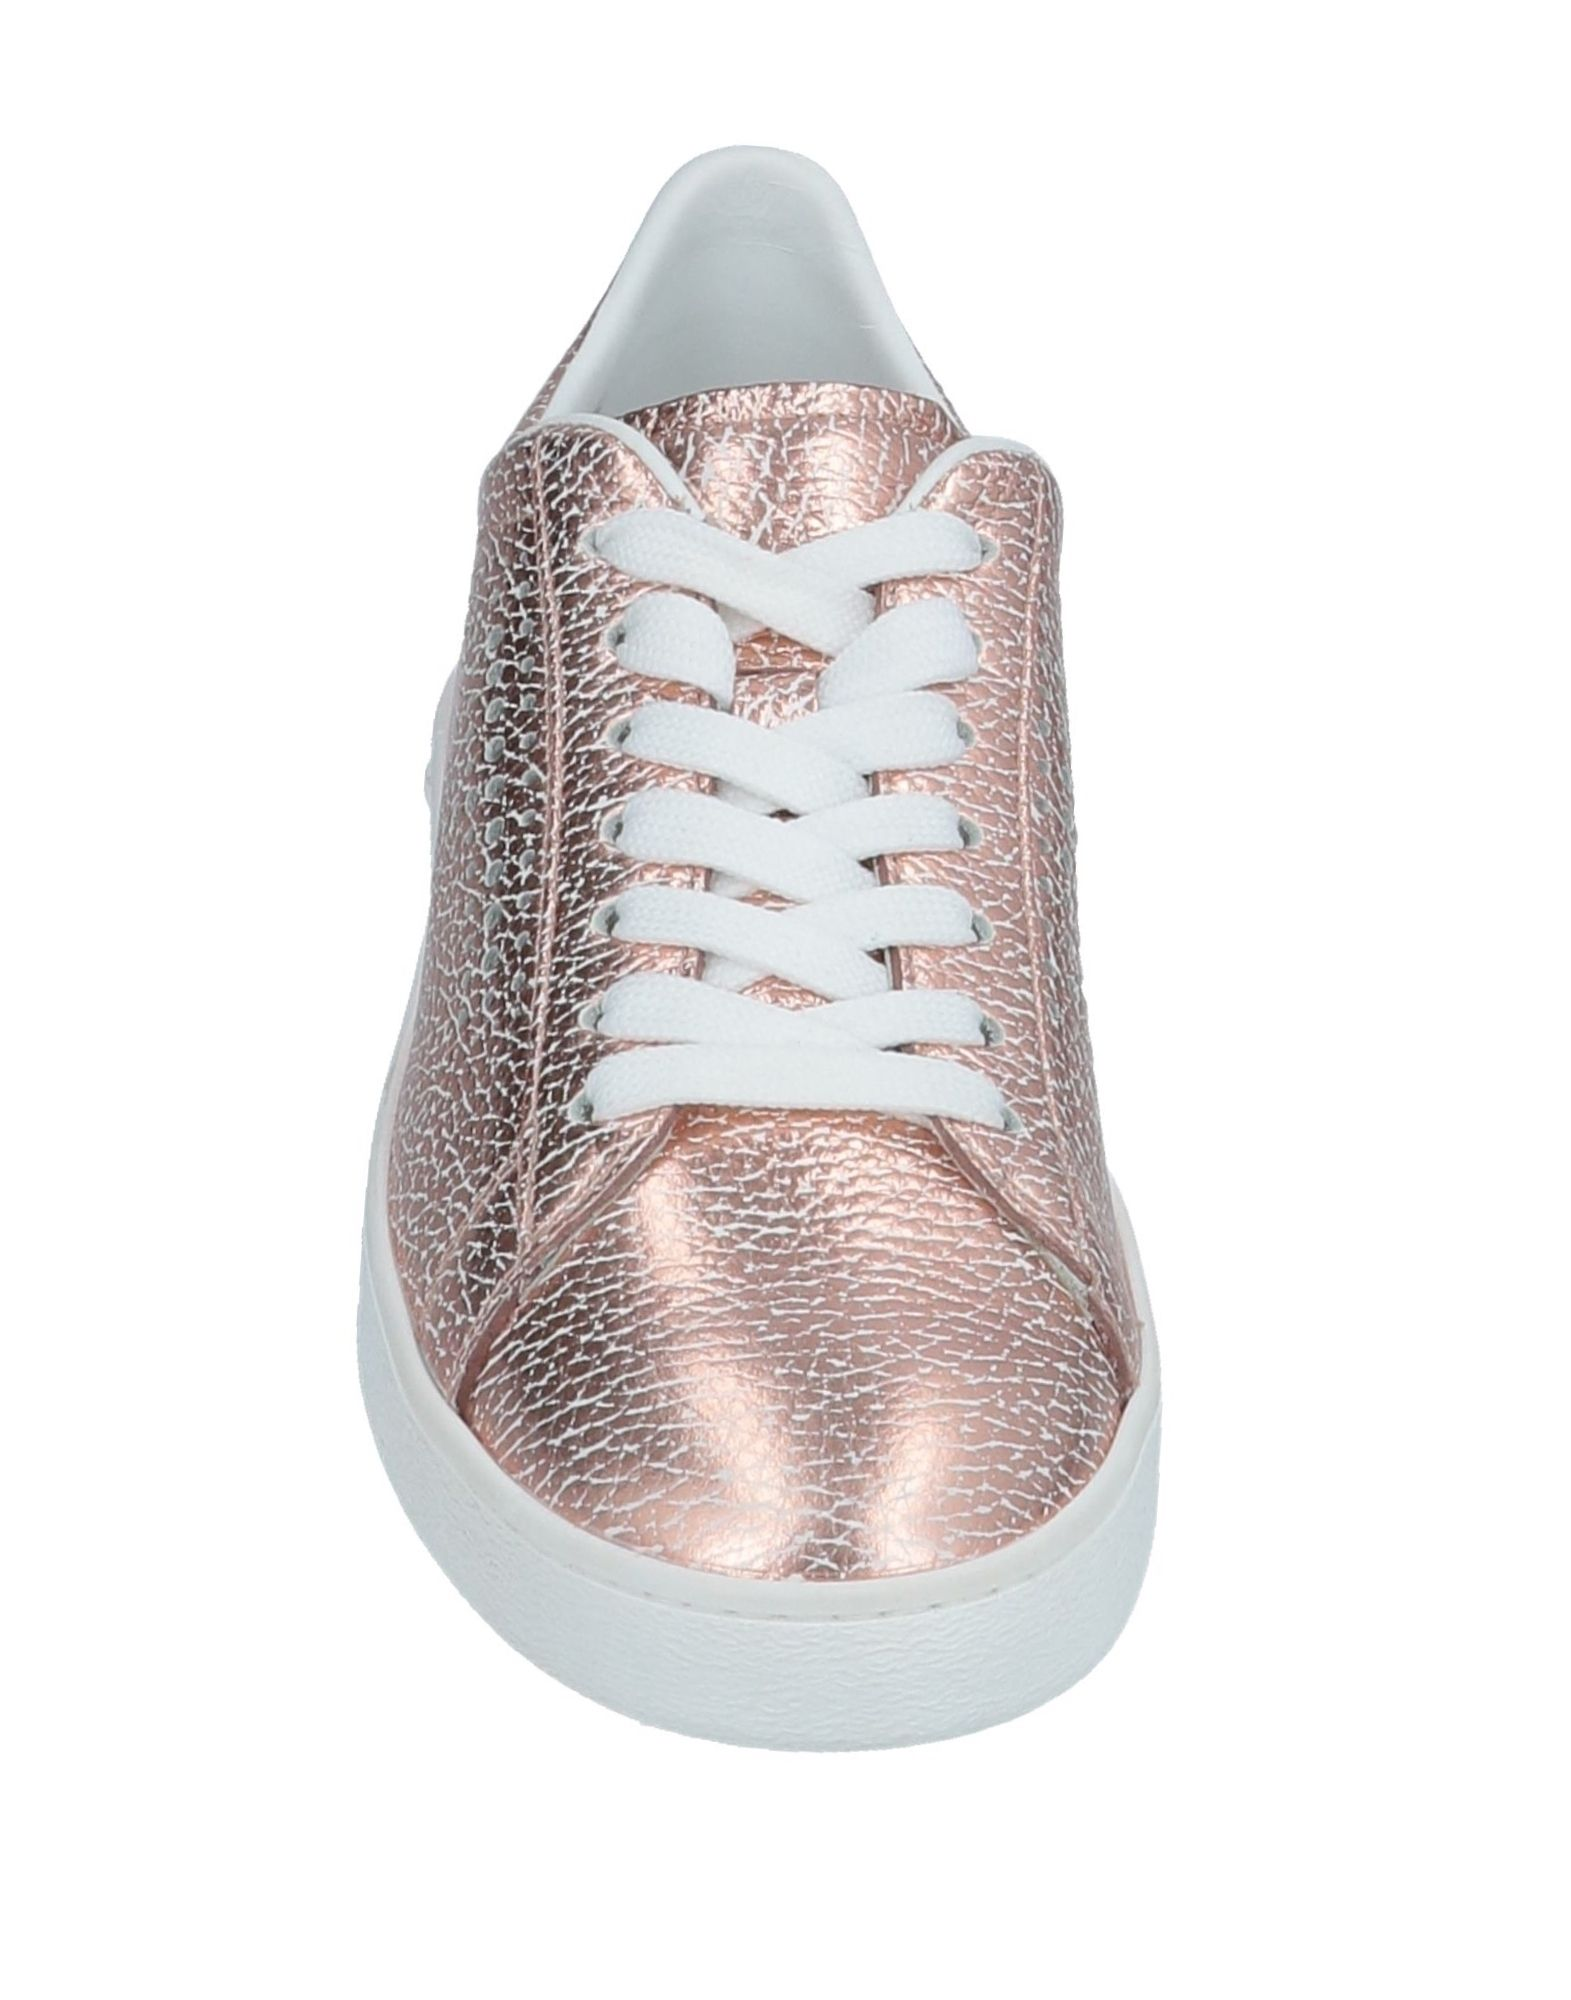 Tod's Sneakers - Women Women Women Tod's Sneakers online on  Canada - 11431297QH d1114c